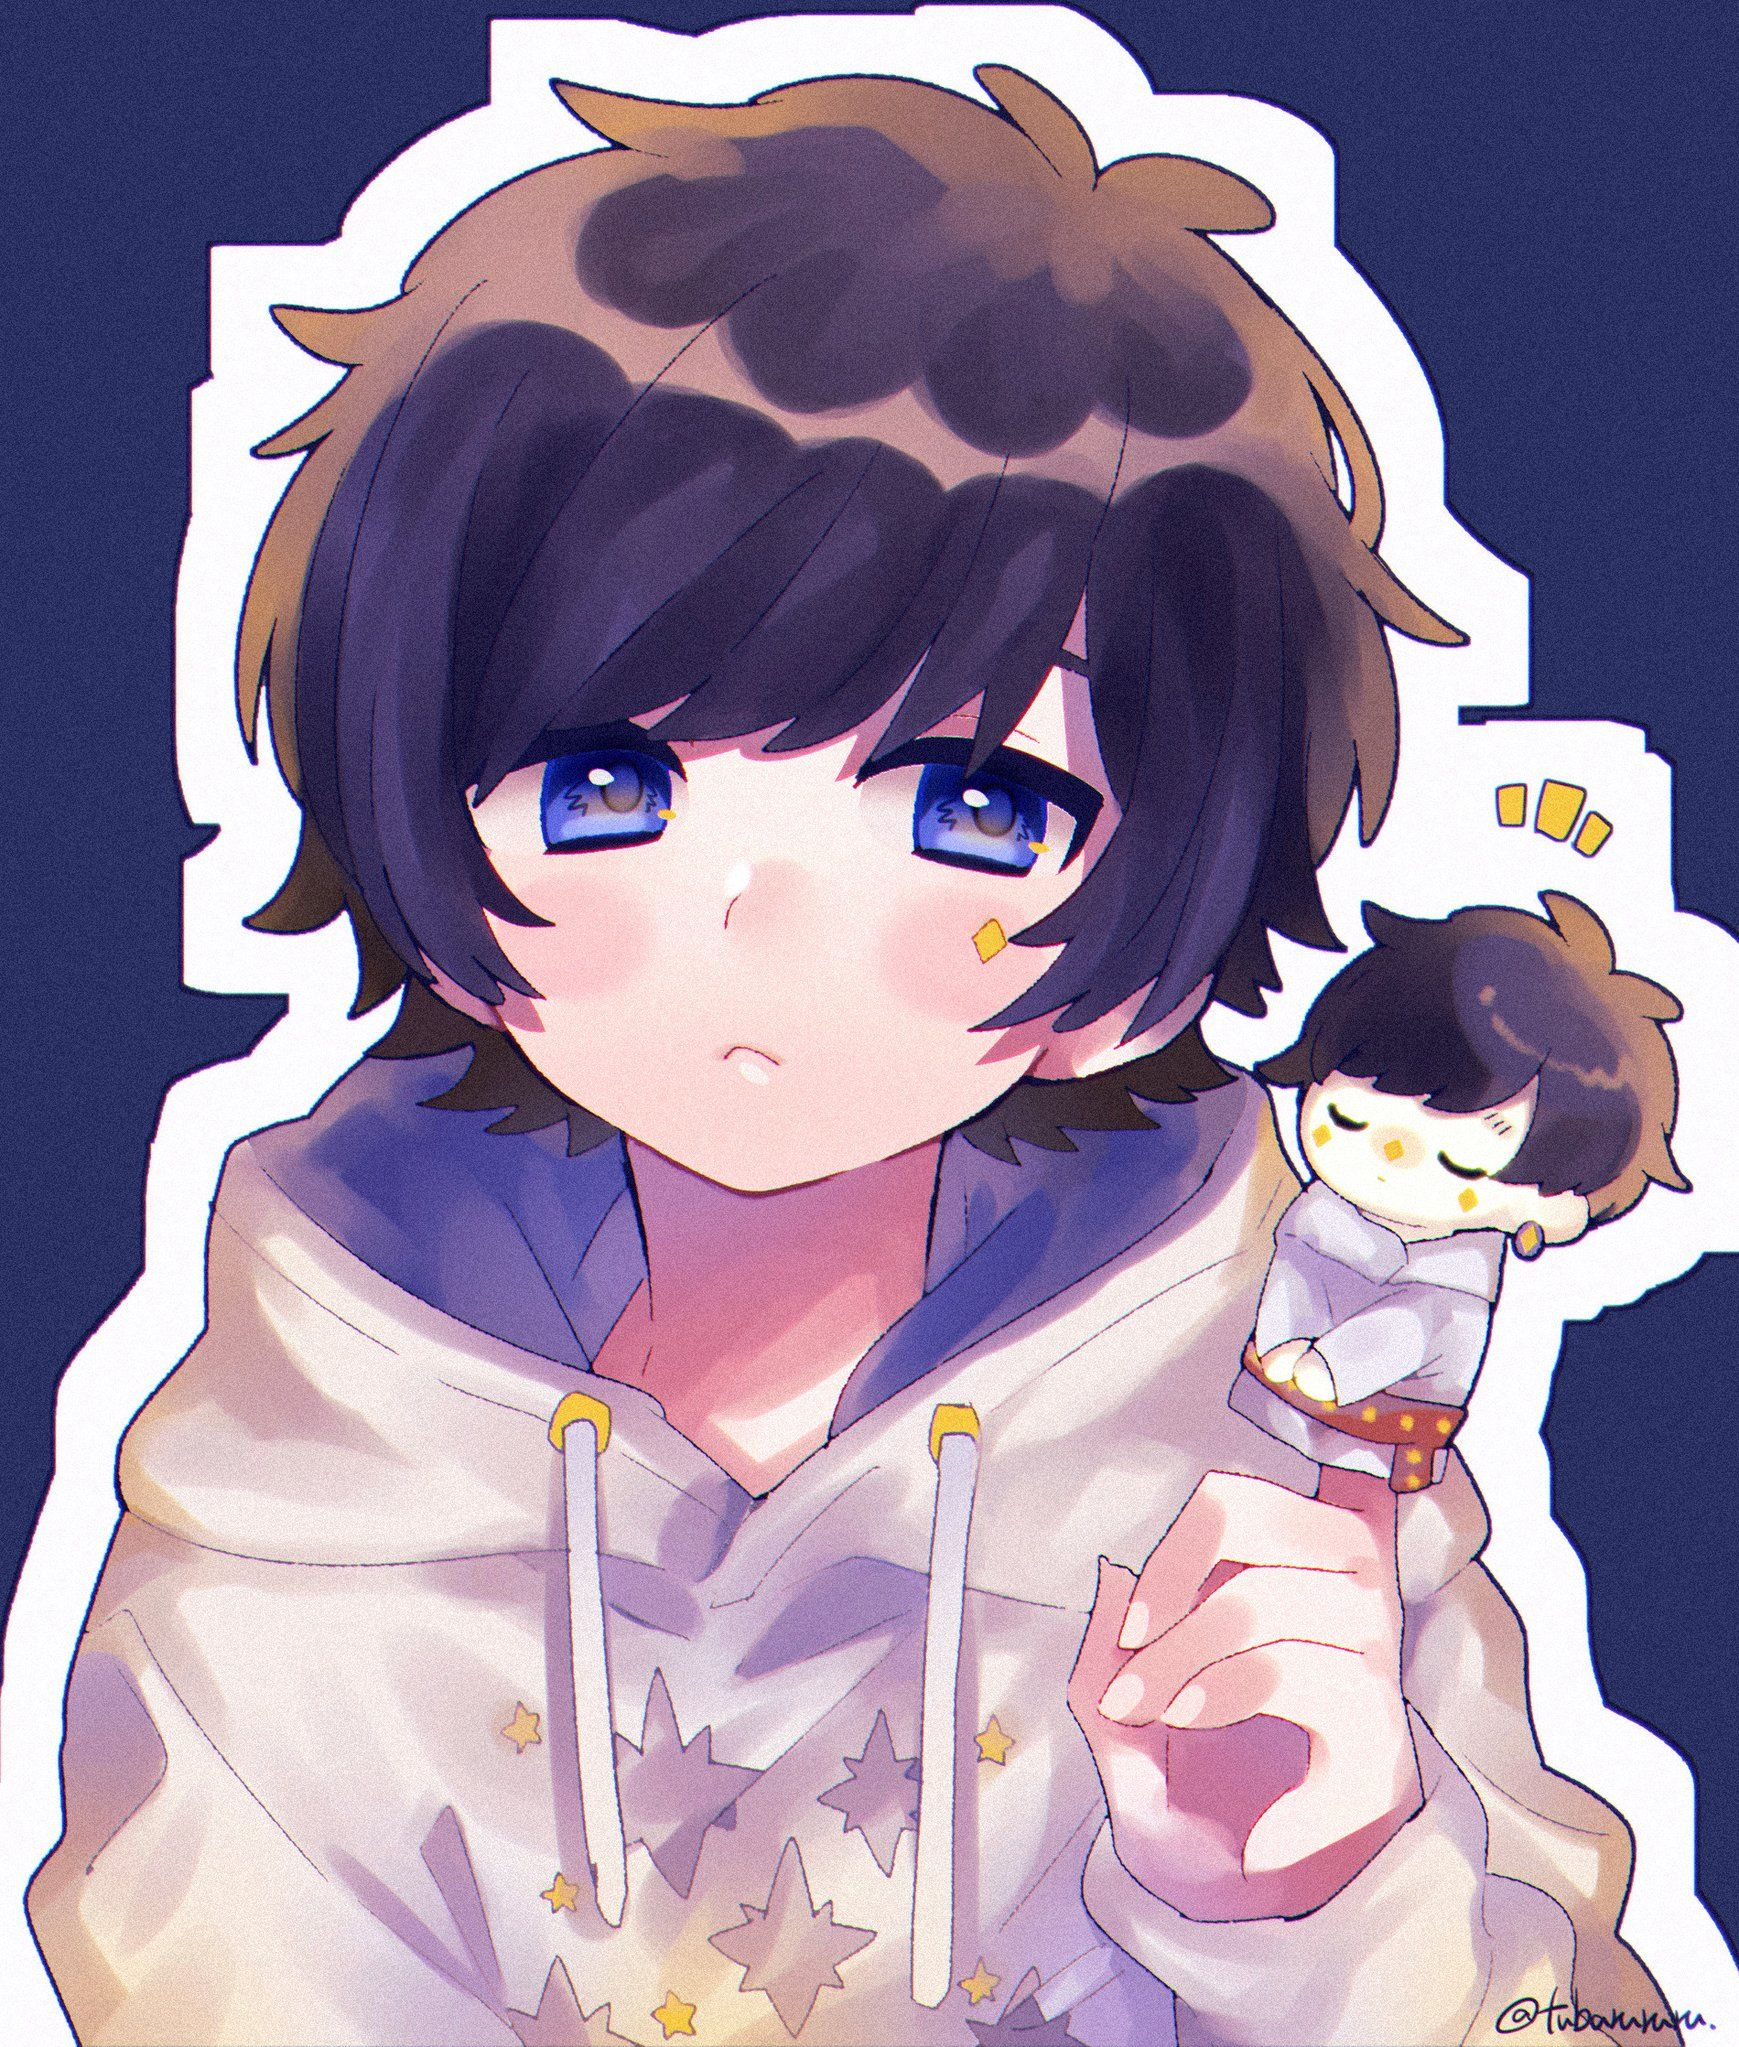 Twitter Anime Character Design Anime Chibi Anime Drawings Boy